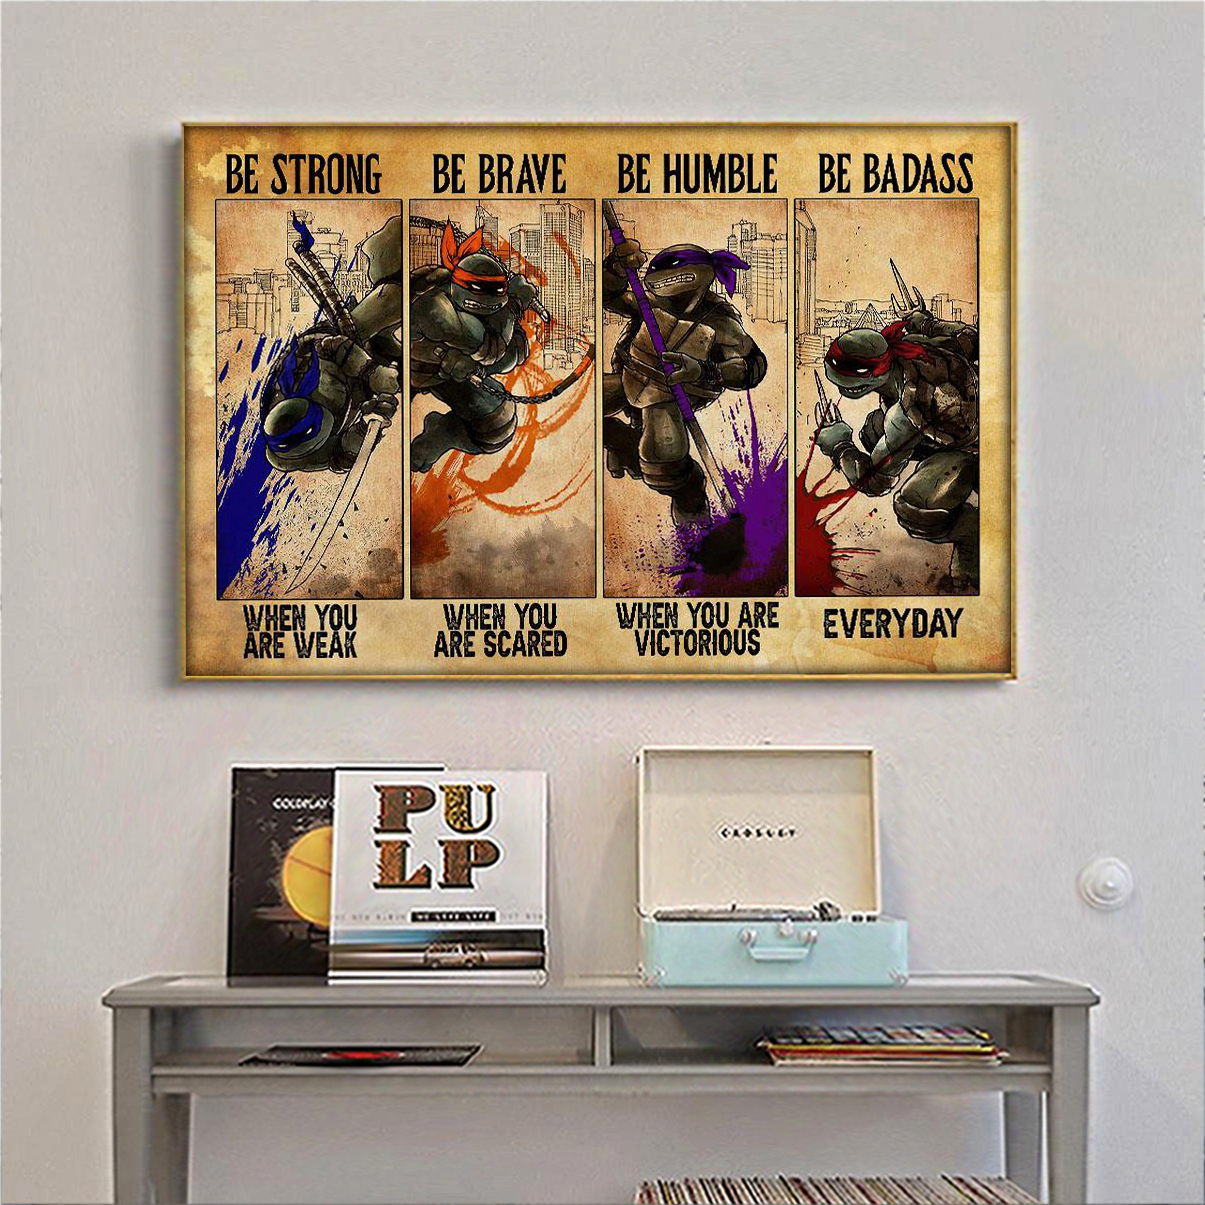 Teenage Mutant Ninja Turtles black be strong be brave be humble be badass poster A1